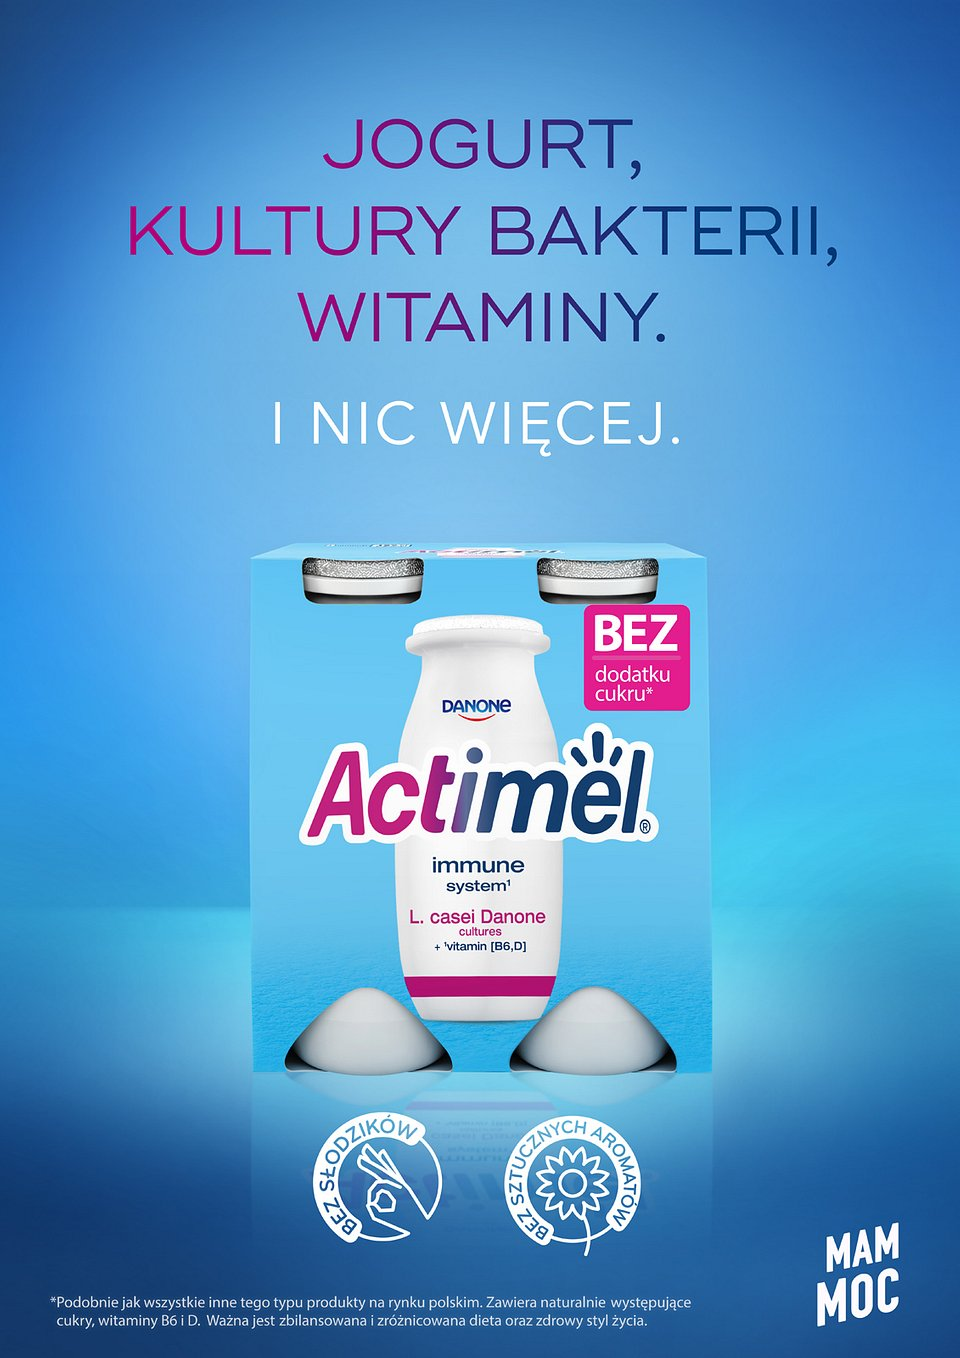 KV Actimel no added sugar.jpg